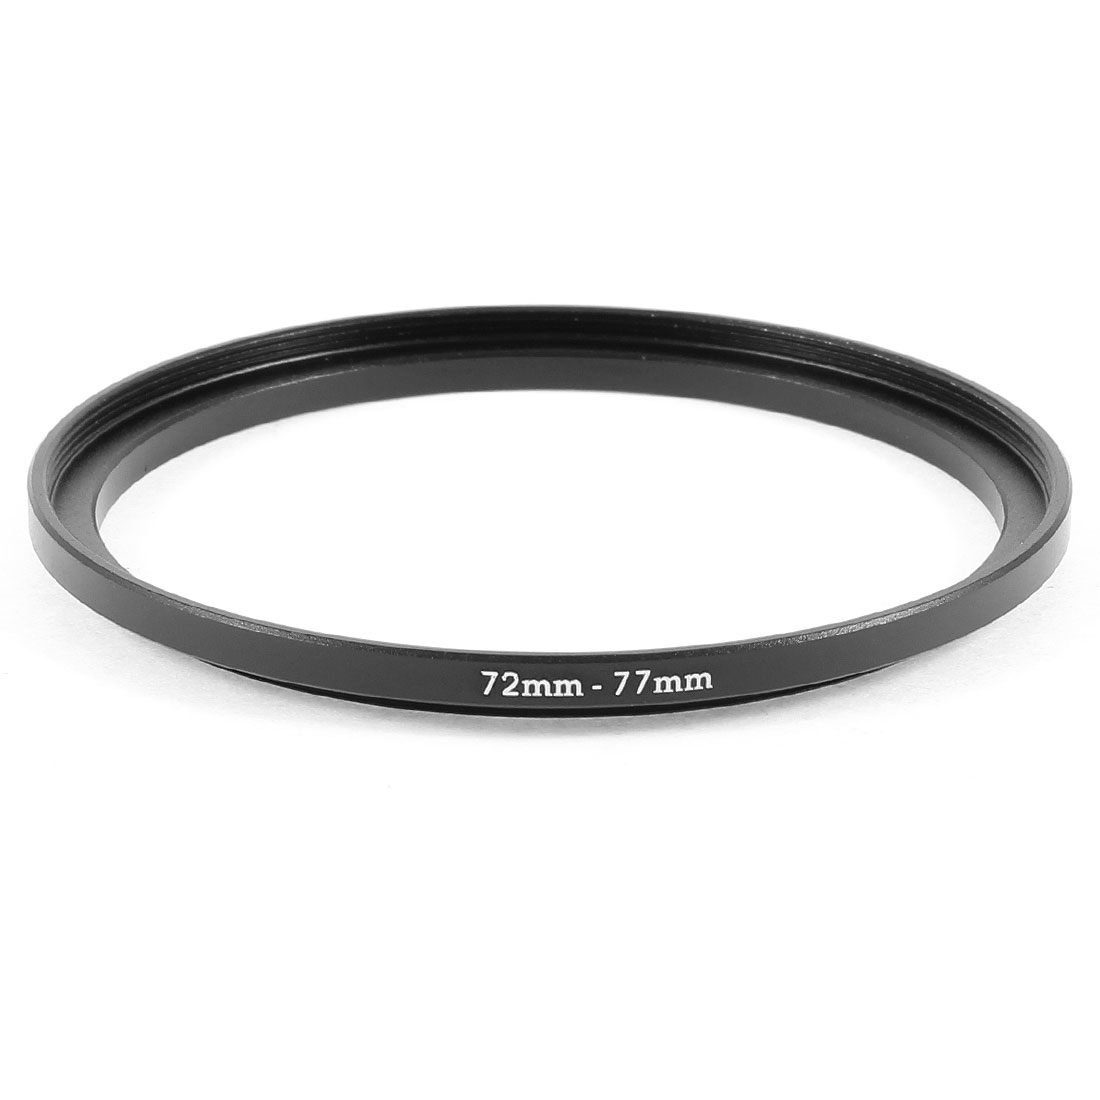 Aluminum Step Up Lens Filter Ring Stepping Adapter 72mm-77mm